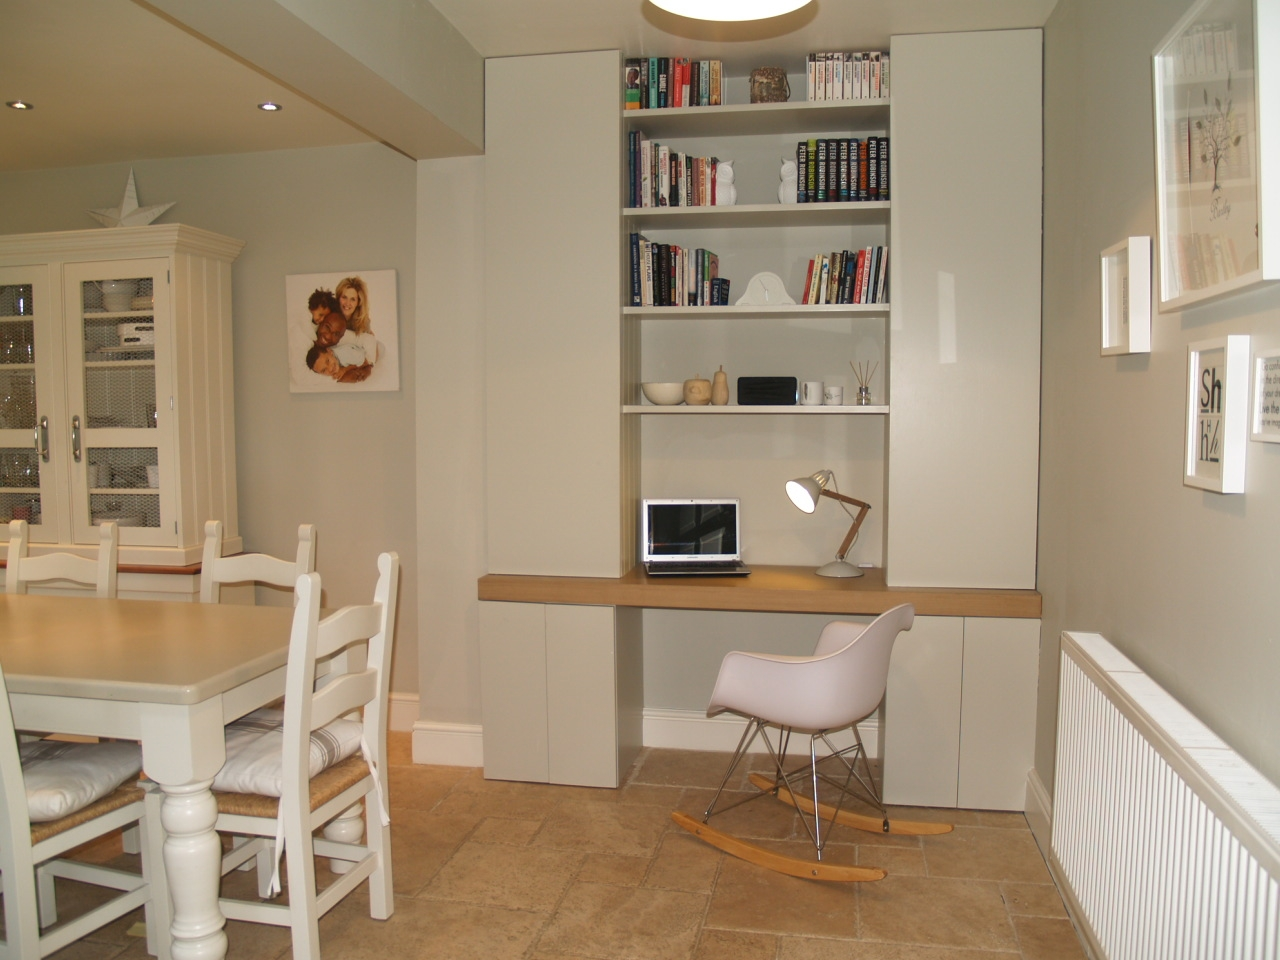 3 bedroom semi detached house SSTC in Solihull - photograph 9.